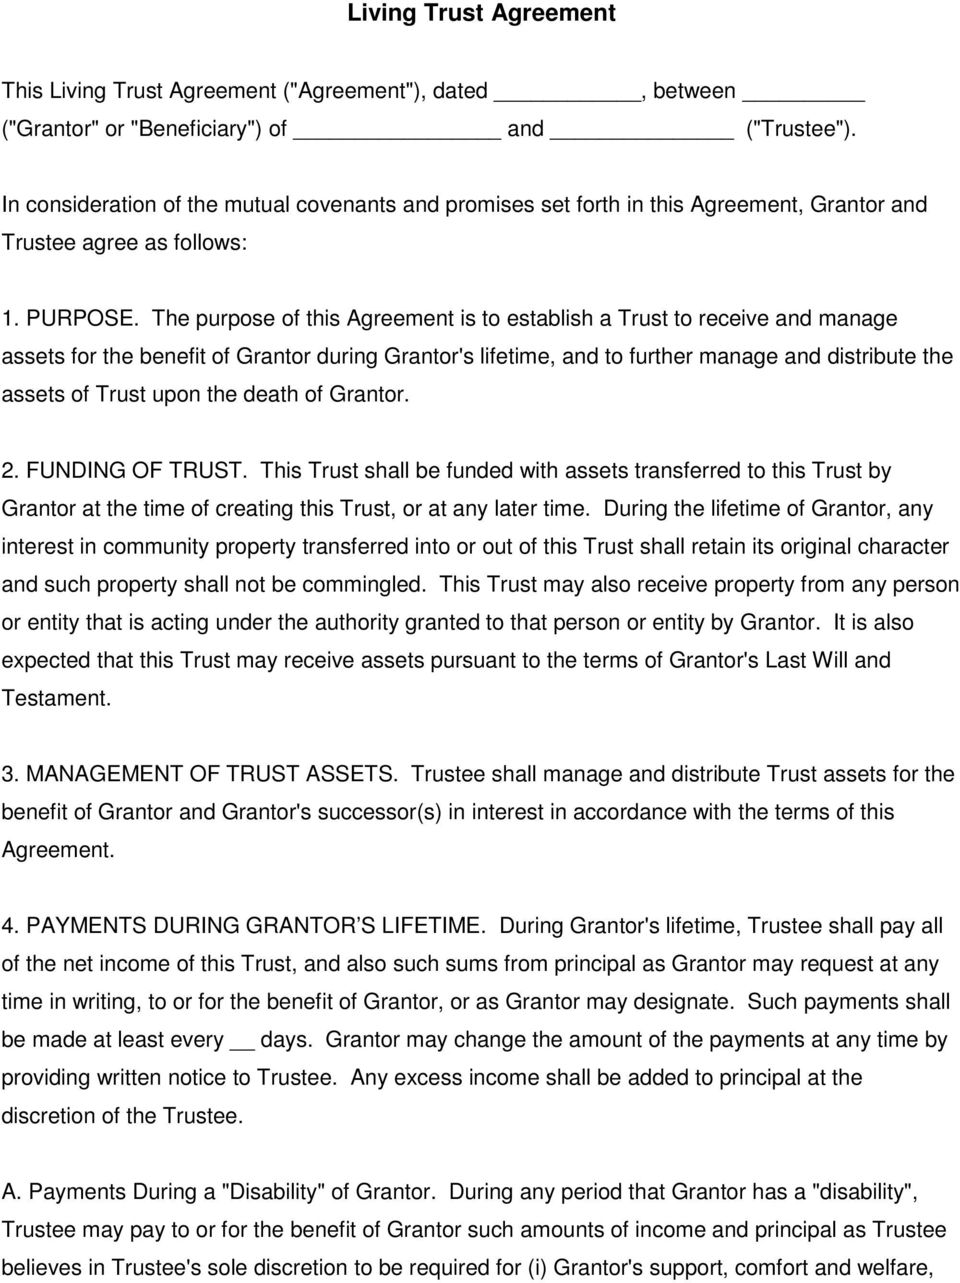 The purpose of this Agreement is to establish a Trust to receive and manage assets for the benefit of Grantor during Grantor's lifetime, and to further manage and distribute the assets of Trust upon